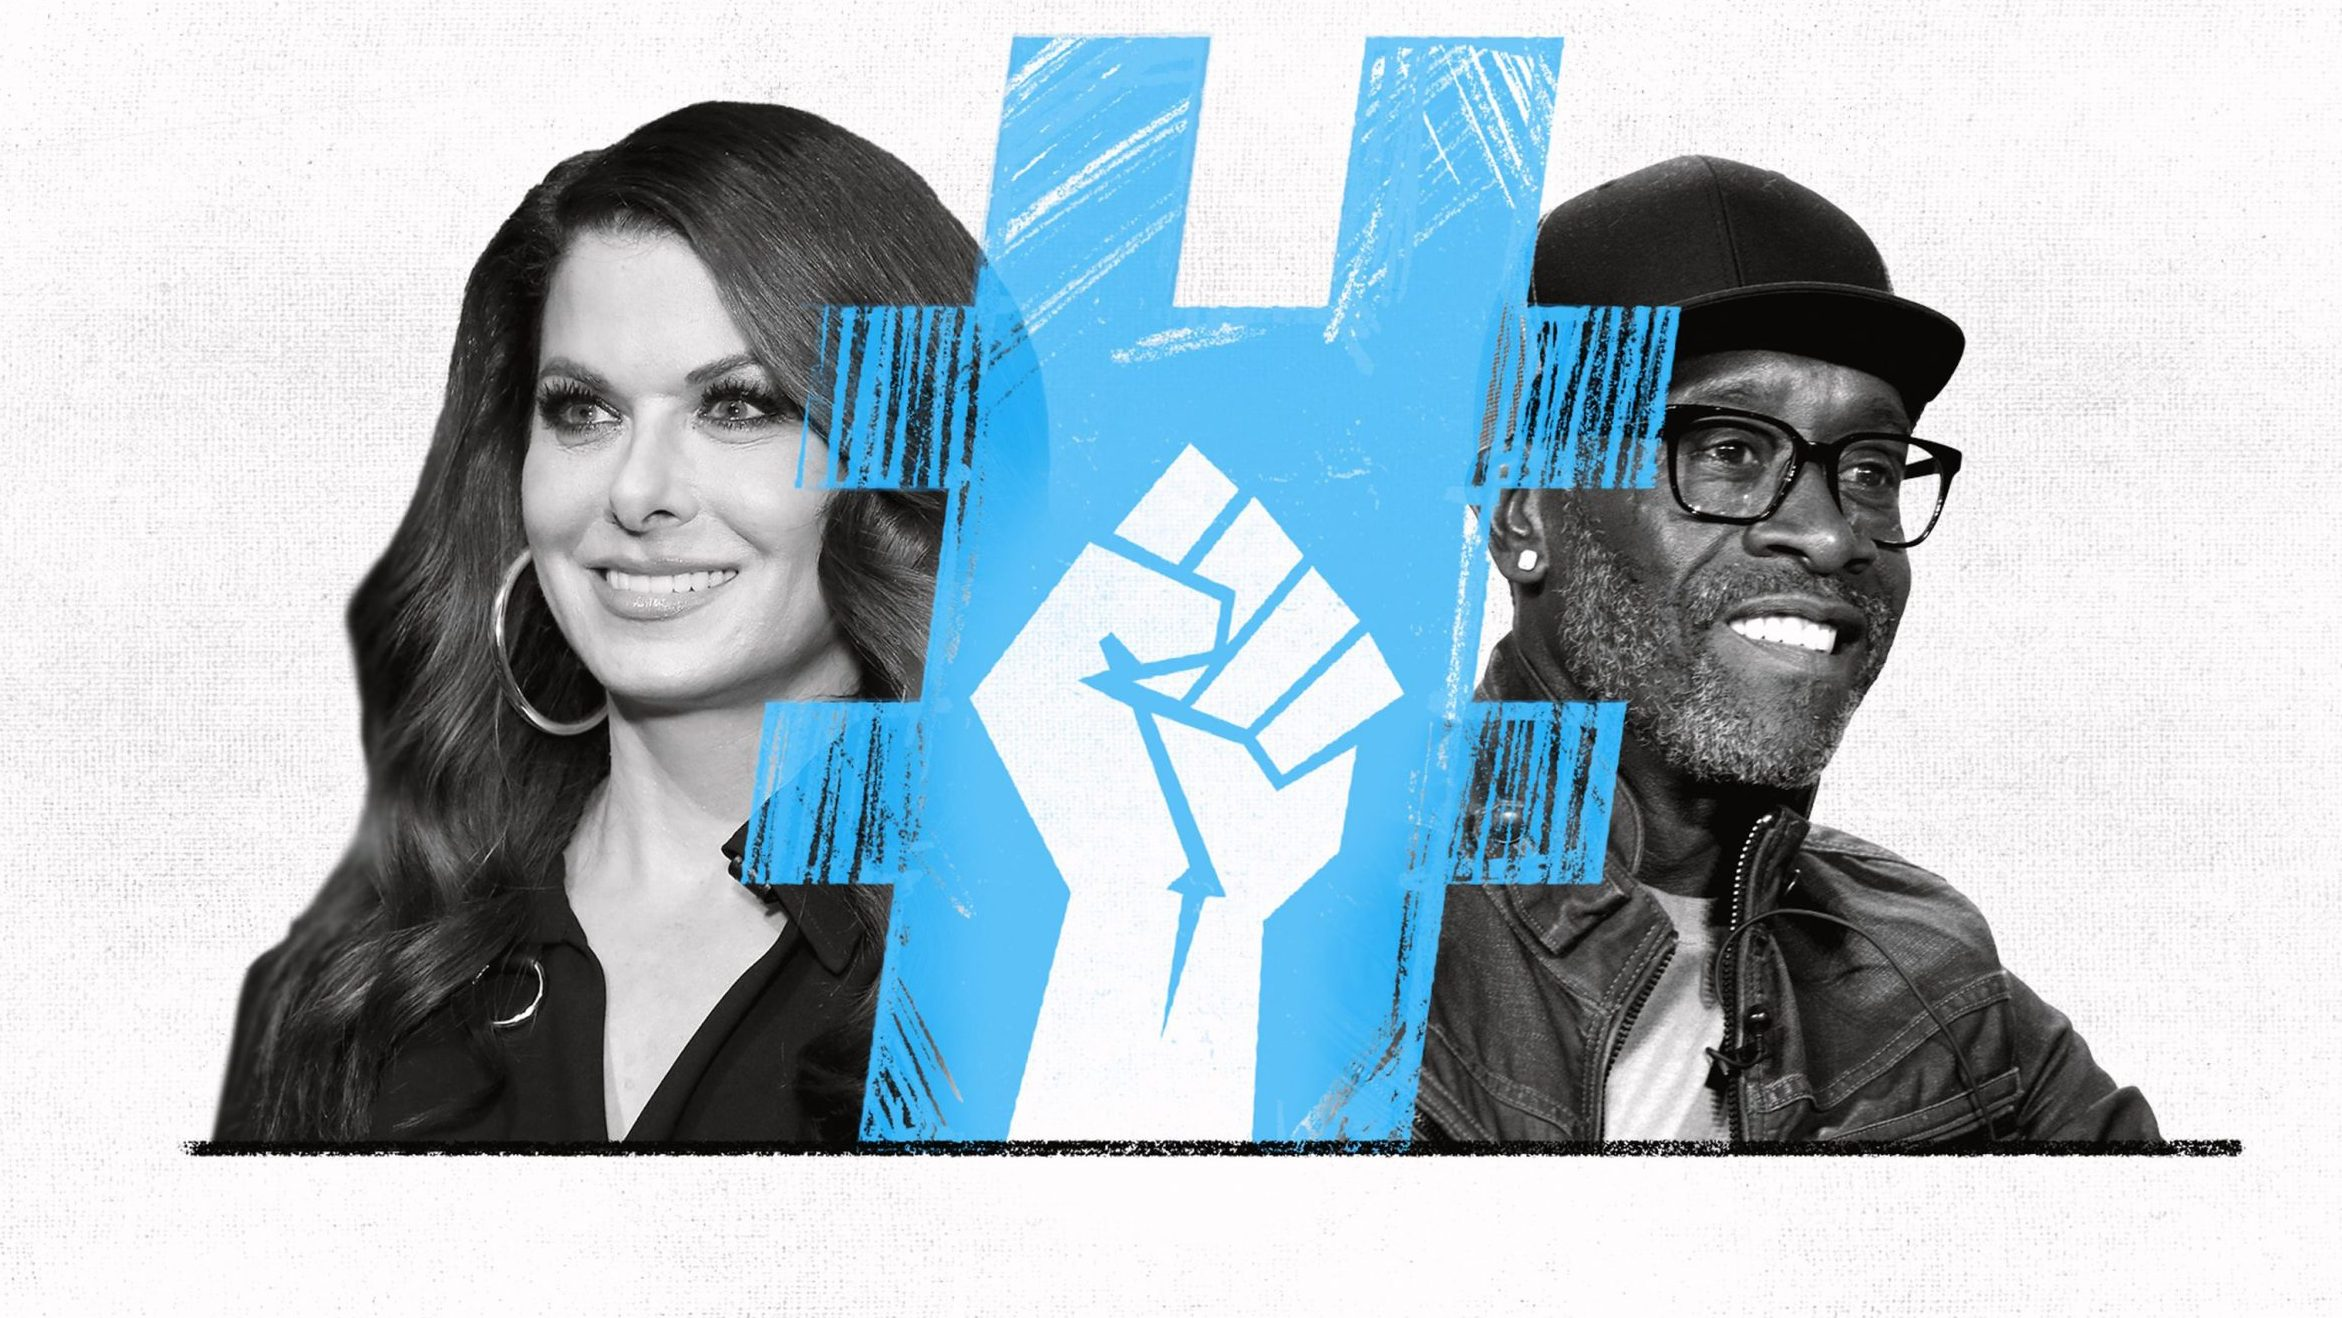 Secret Twitter Rooms Where Debra Messing, Don Cheadle, And The Rest Of The Celebrity #Resistance Organizes